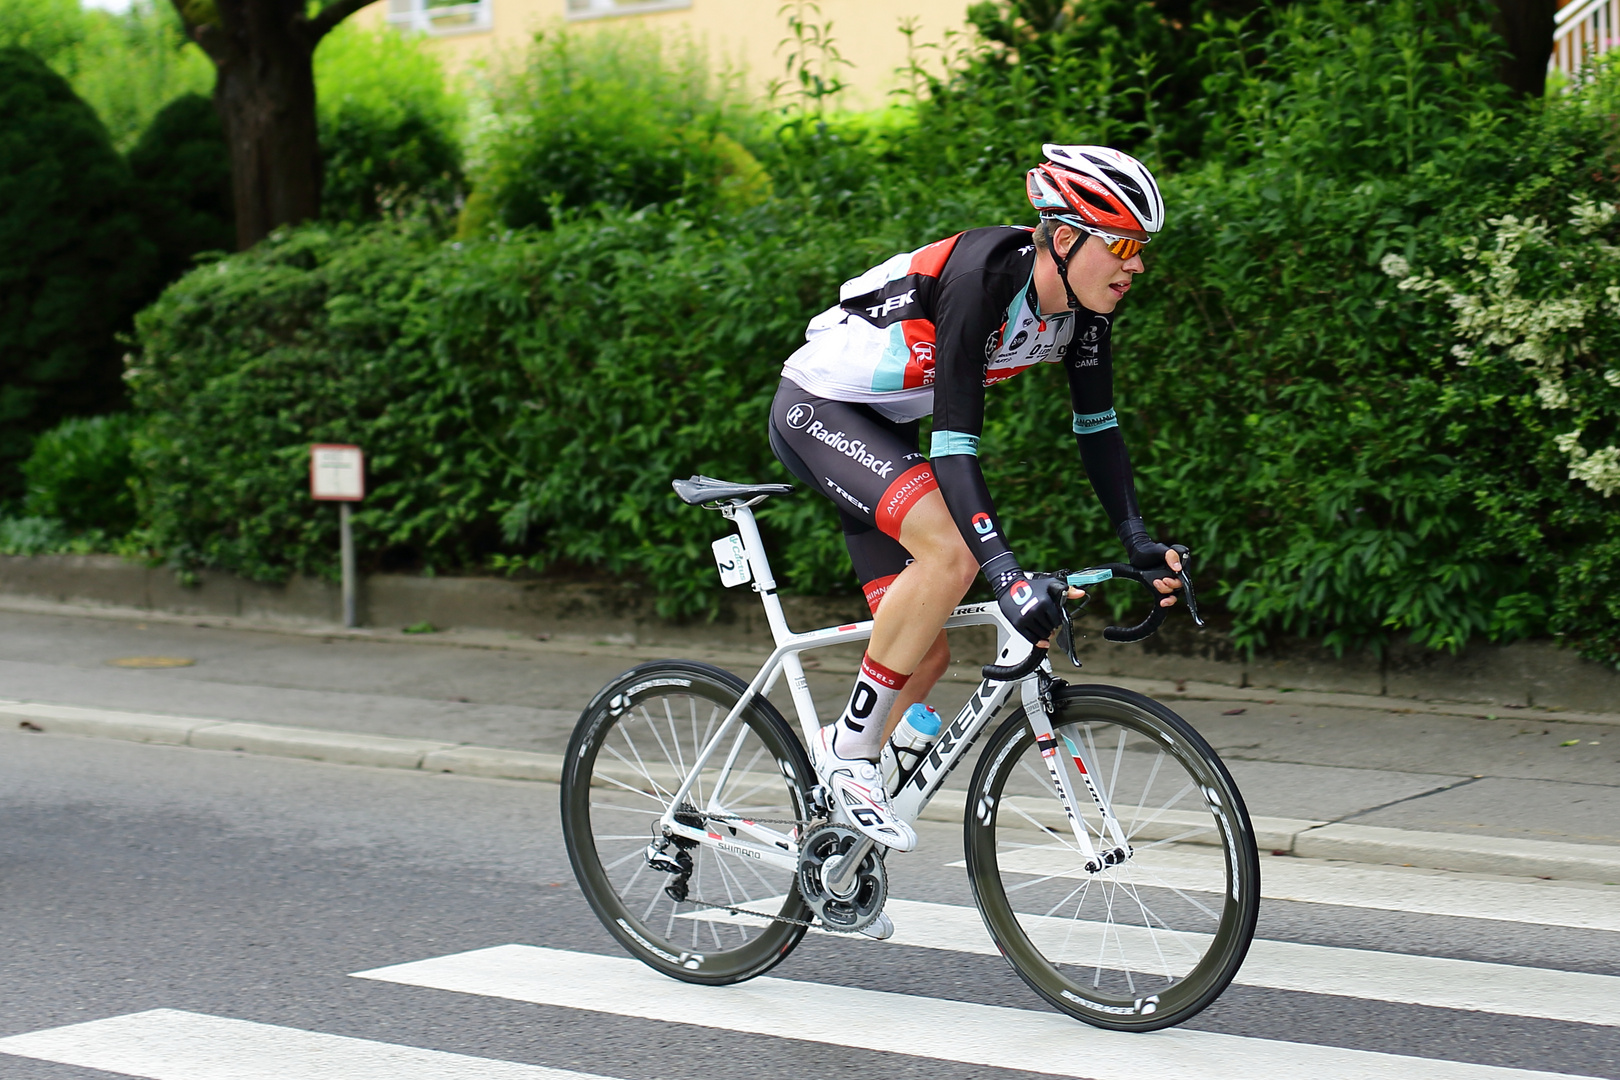 Bob Jungels, Made In Luxembourg